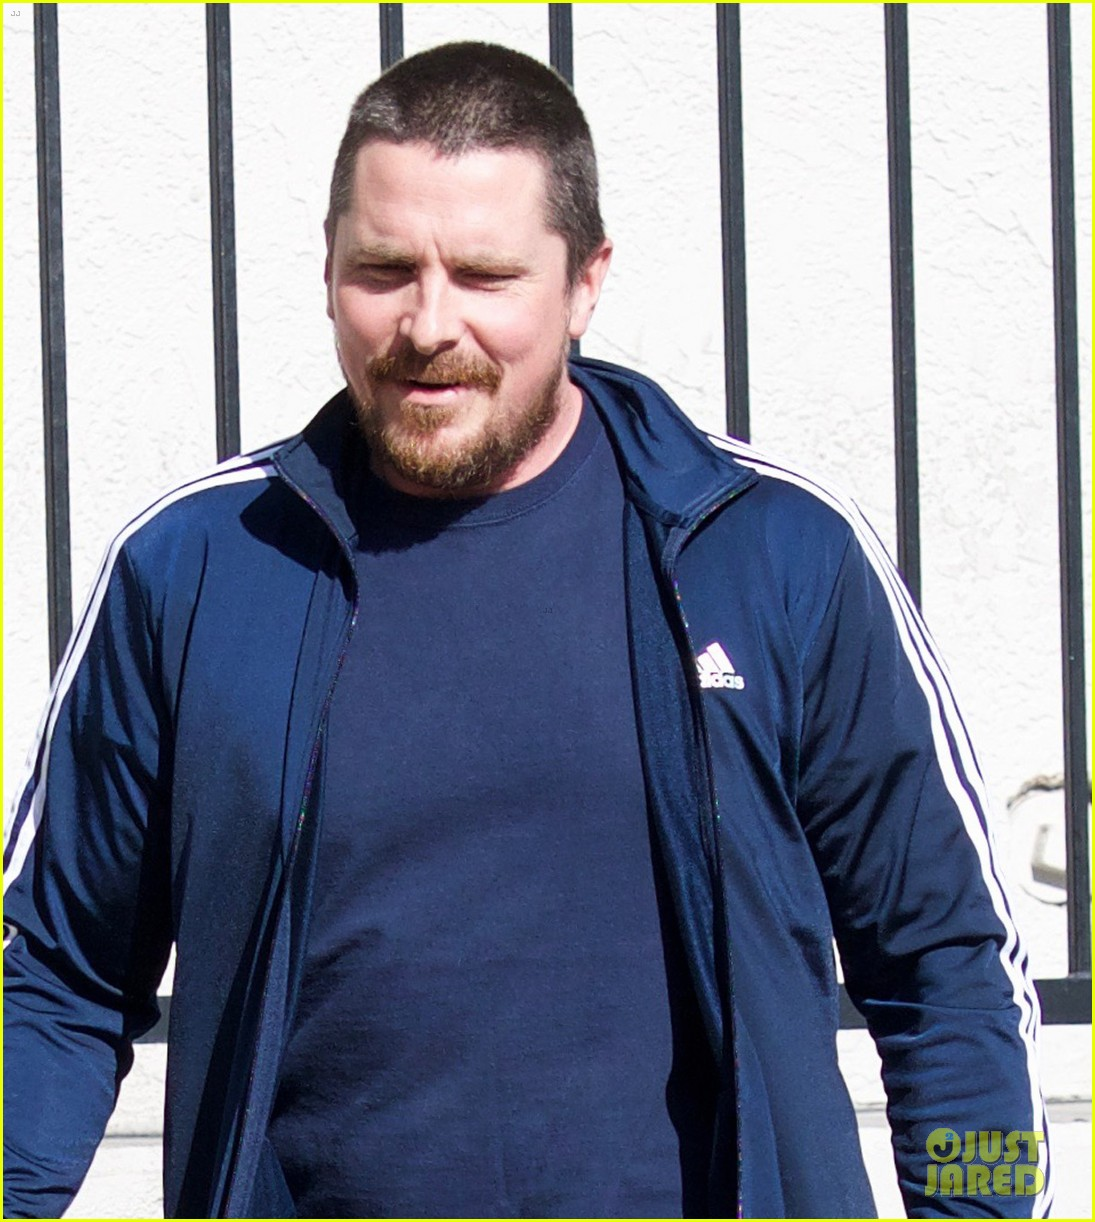 christian bale puts slimmer figure on display while out in la 024014062